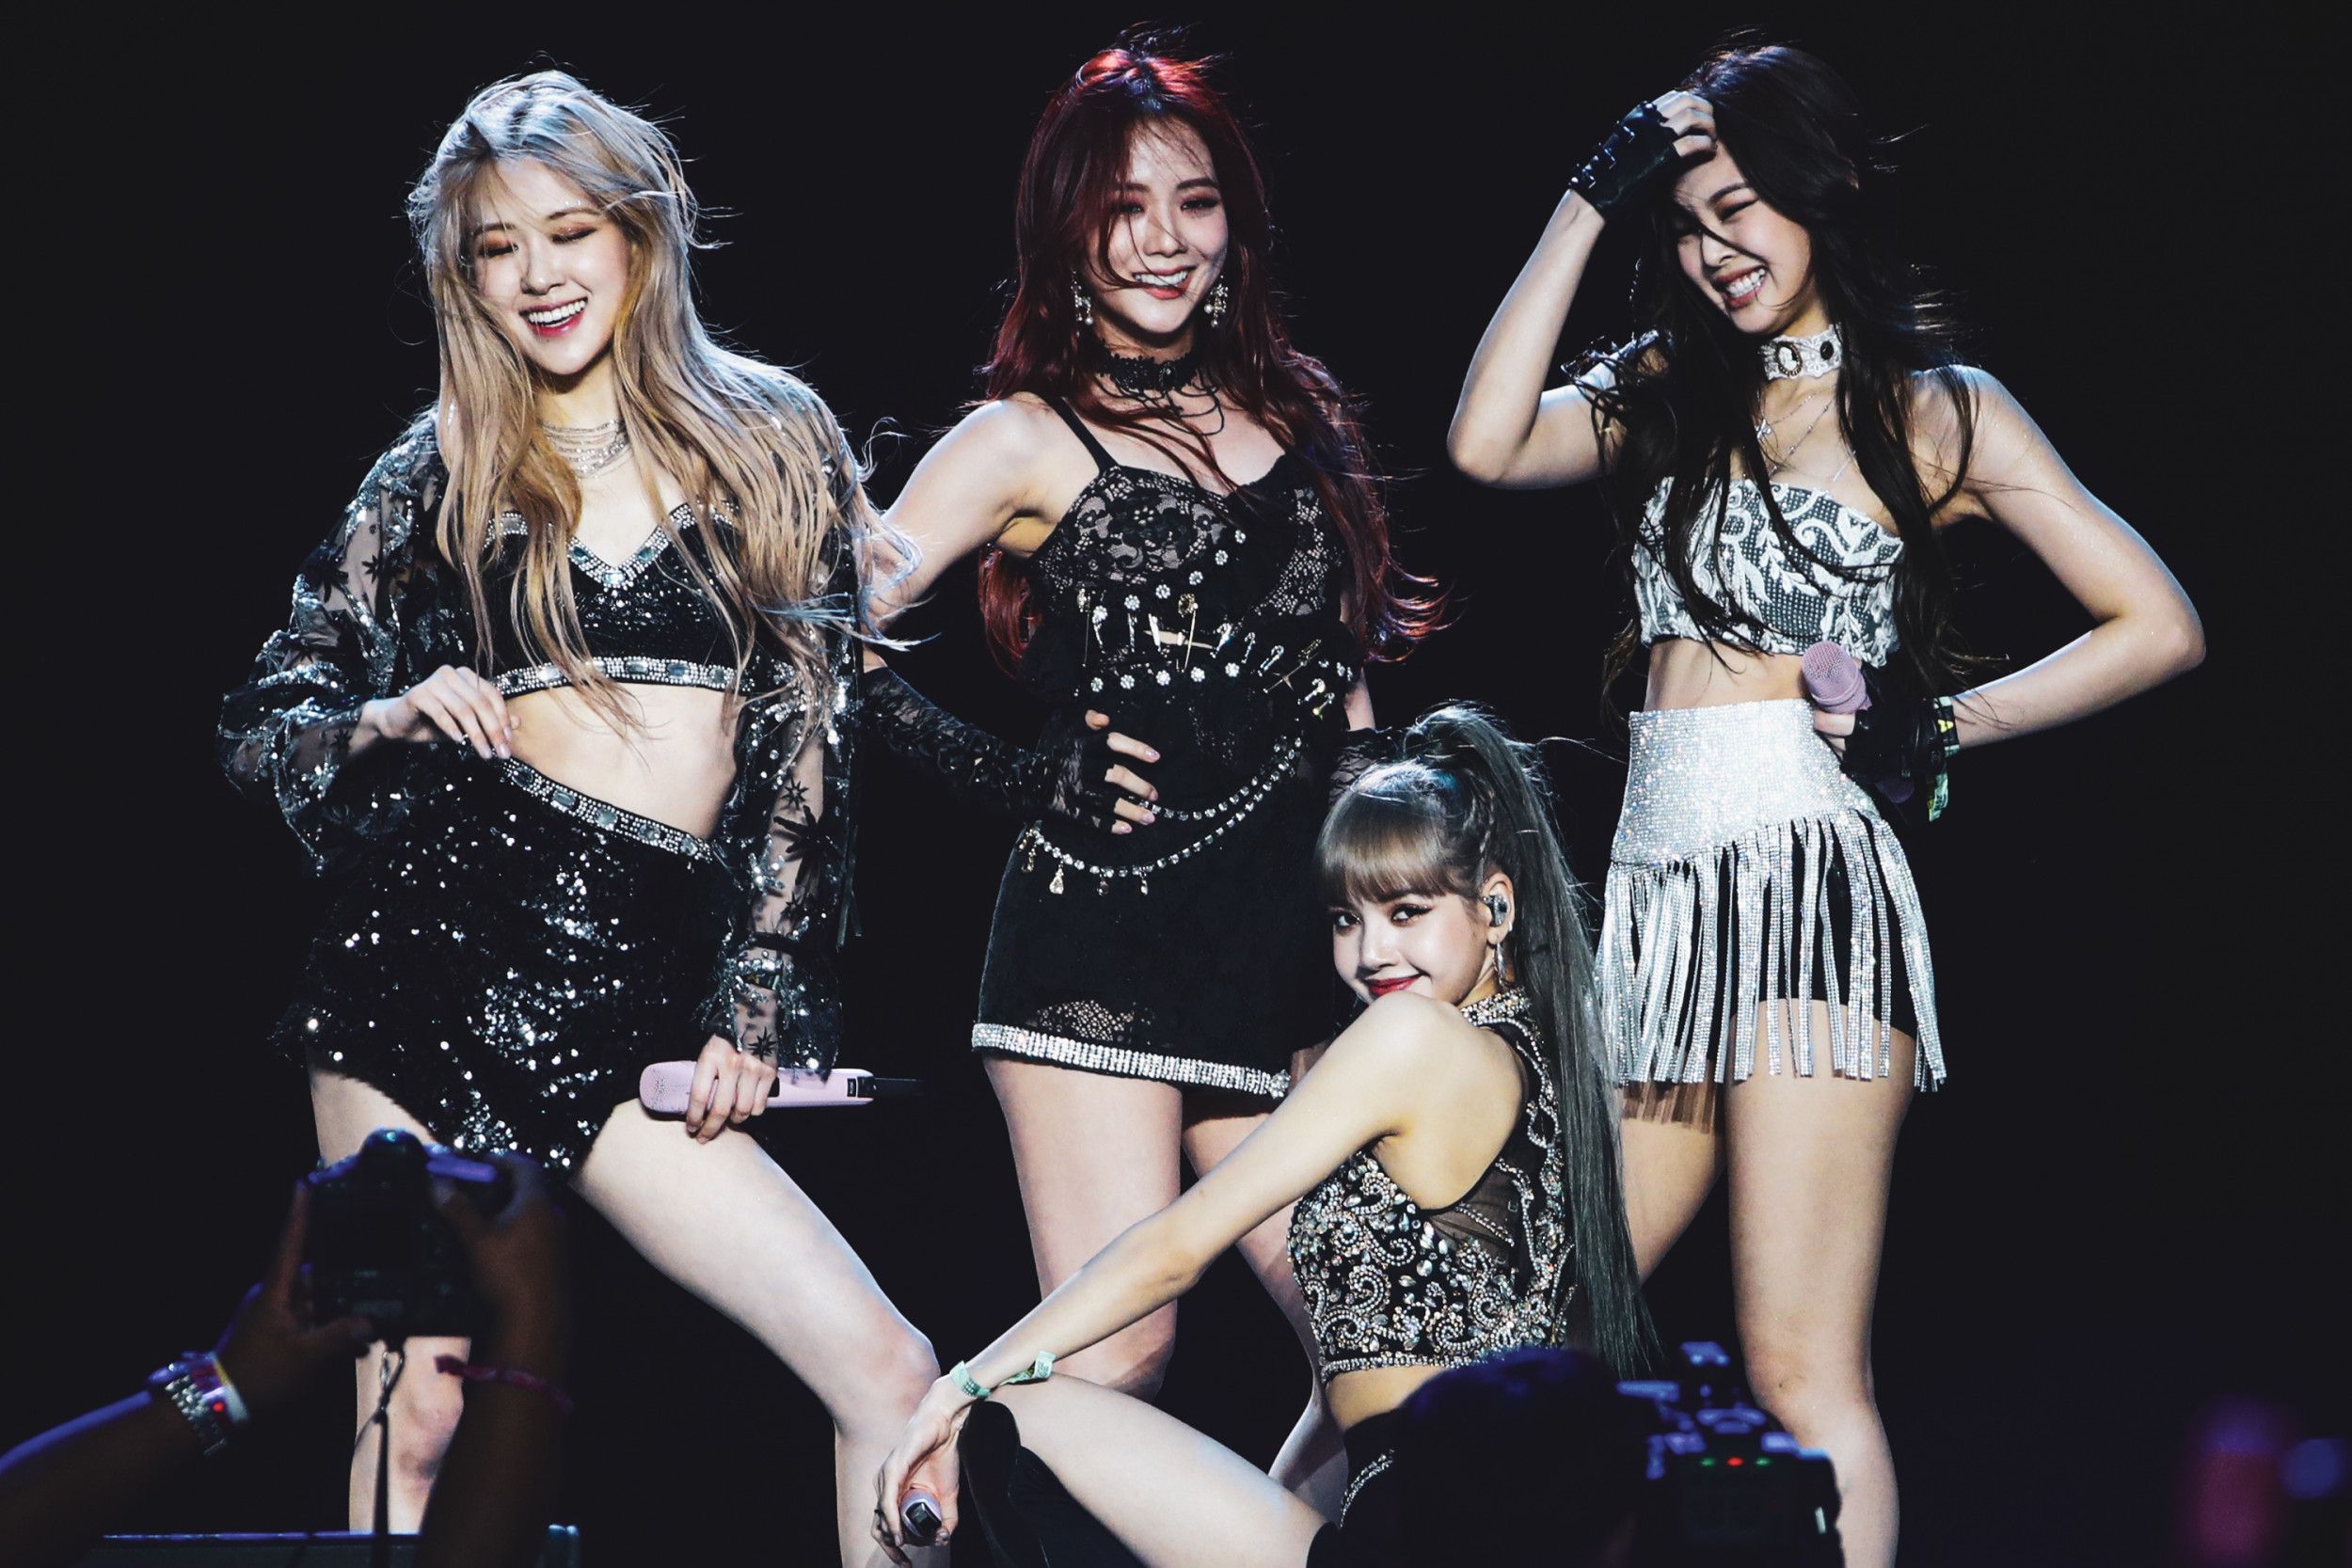 Hituwiththat1b Trends As Blackpink Becomes First K Pop Group